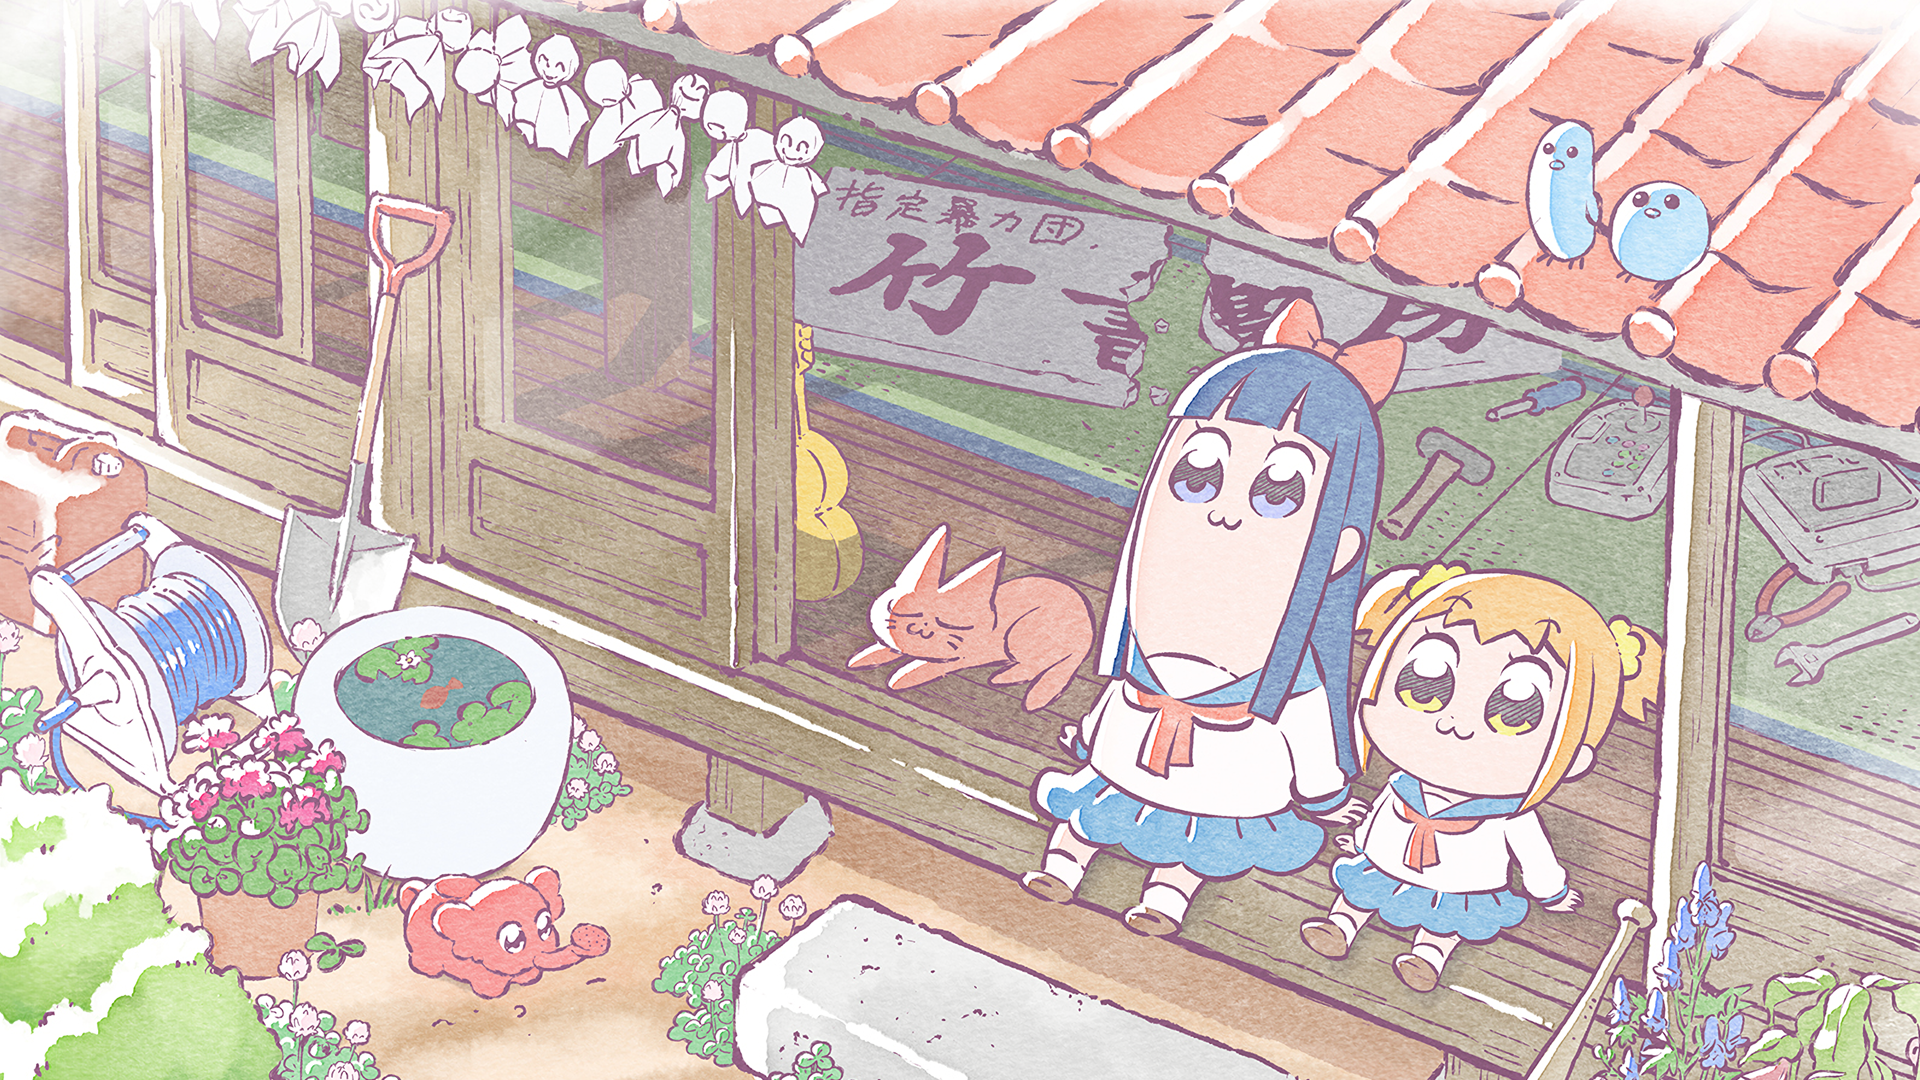 Pop Team Epic Wallpapers And Background 983340   PNG Images   PNGio 1920x1080